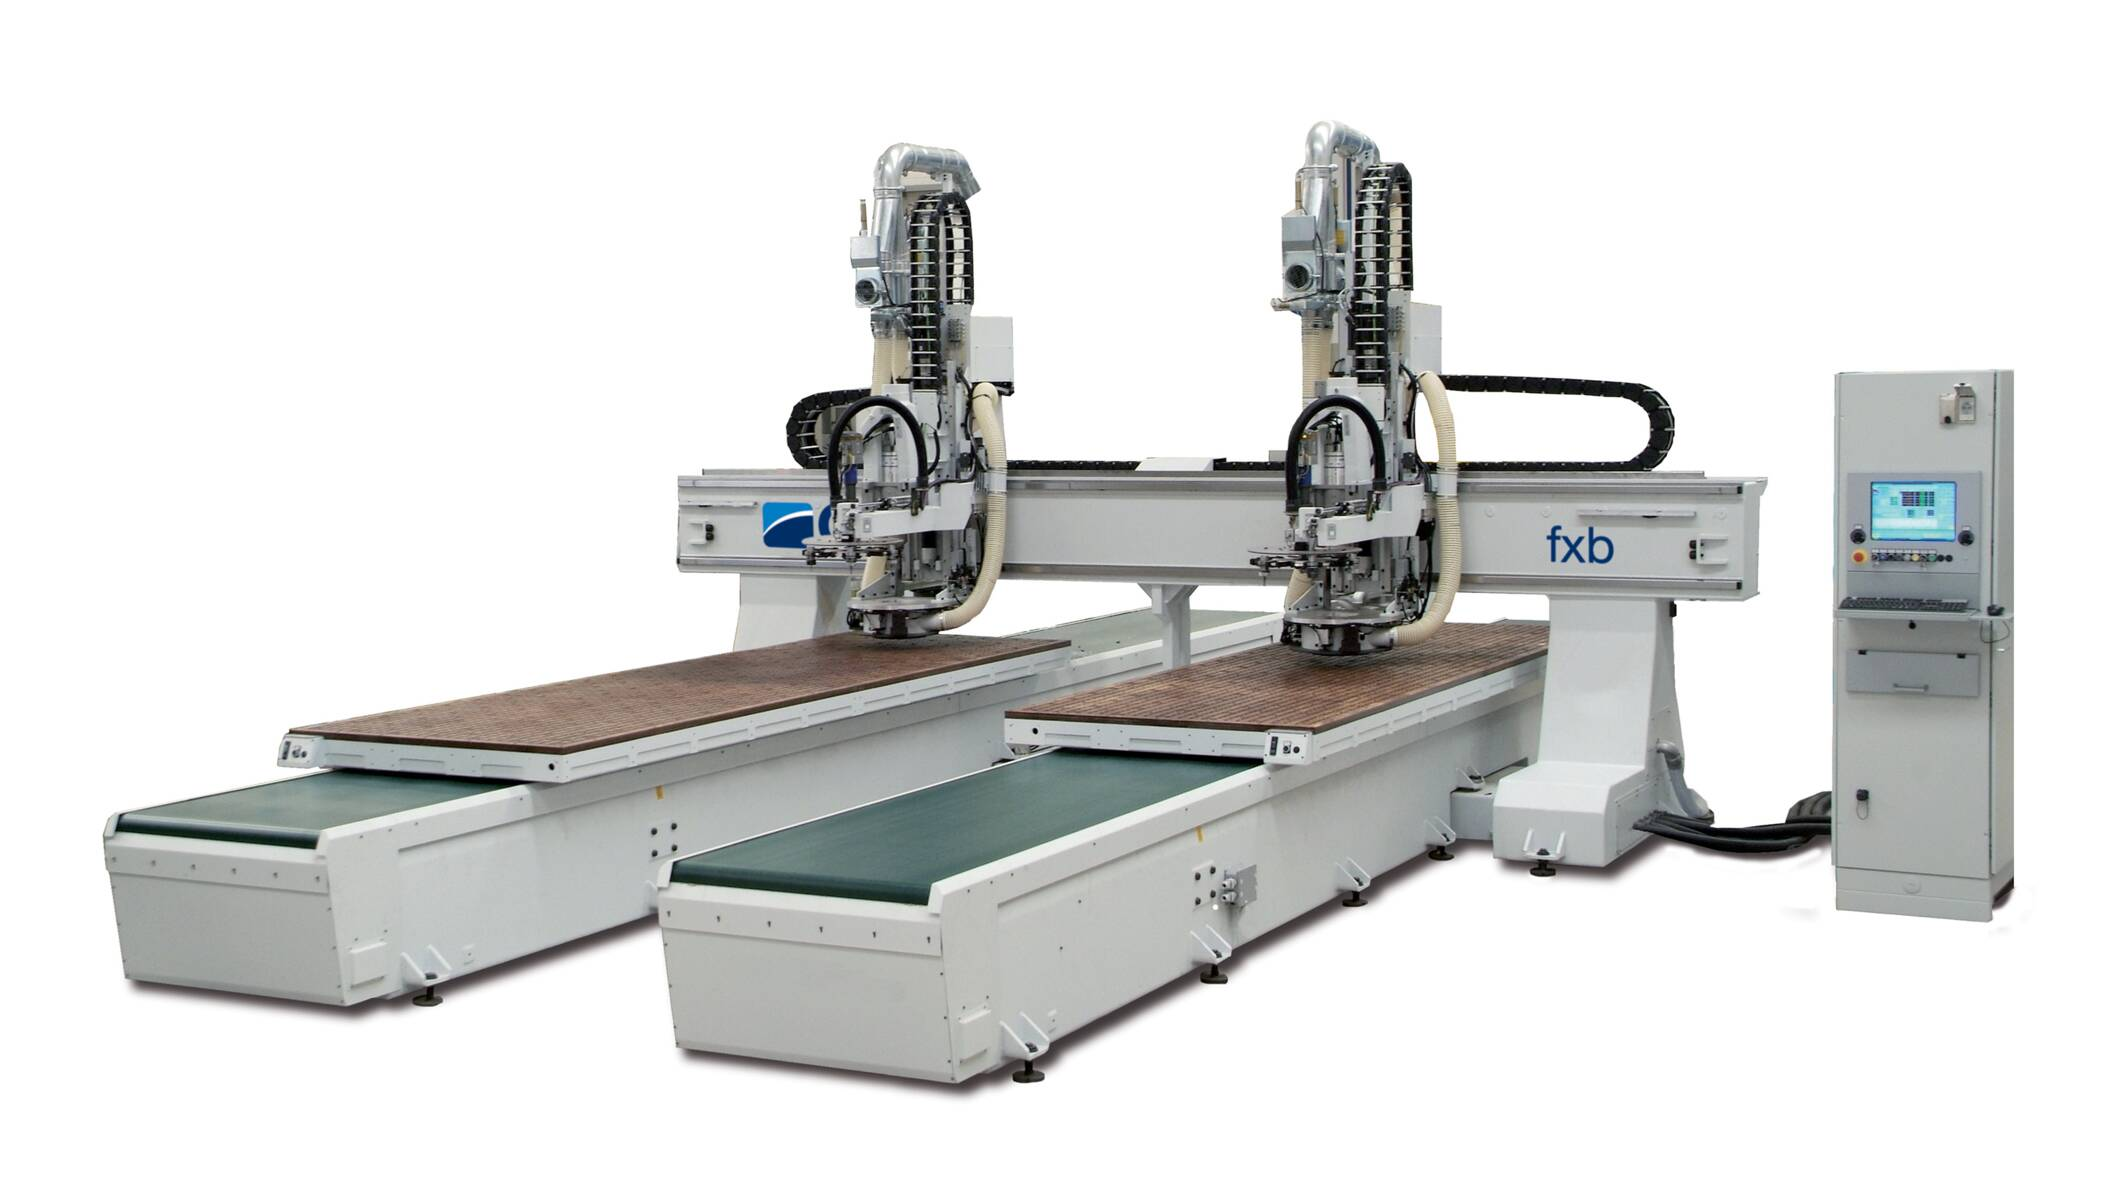 Advanced materials processing - High-speed 5-axis CNC machining centers - fxb